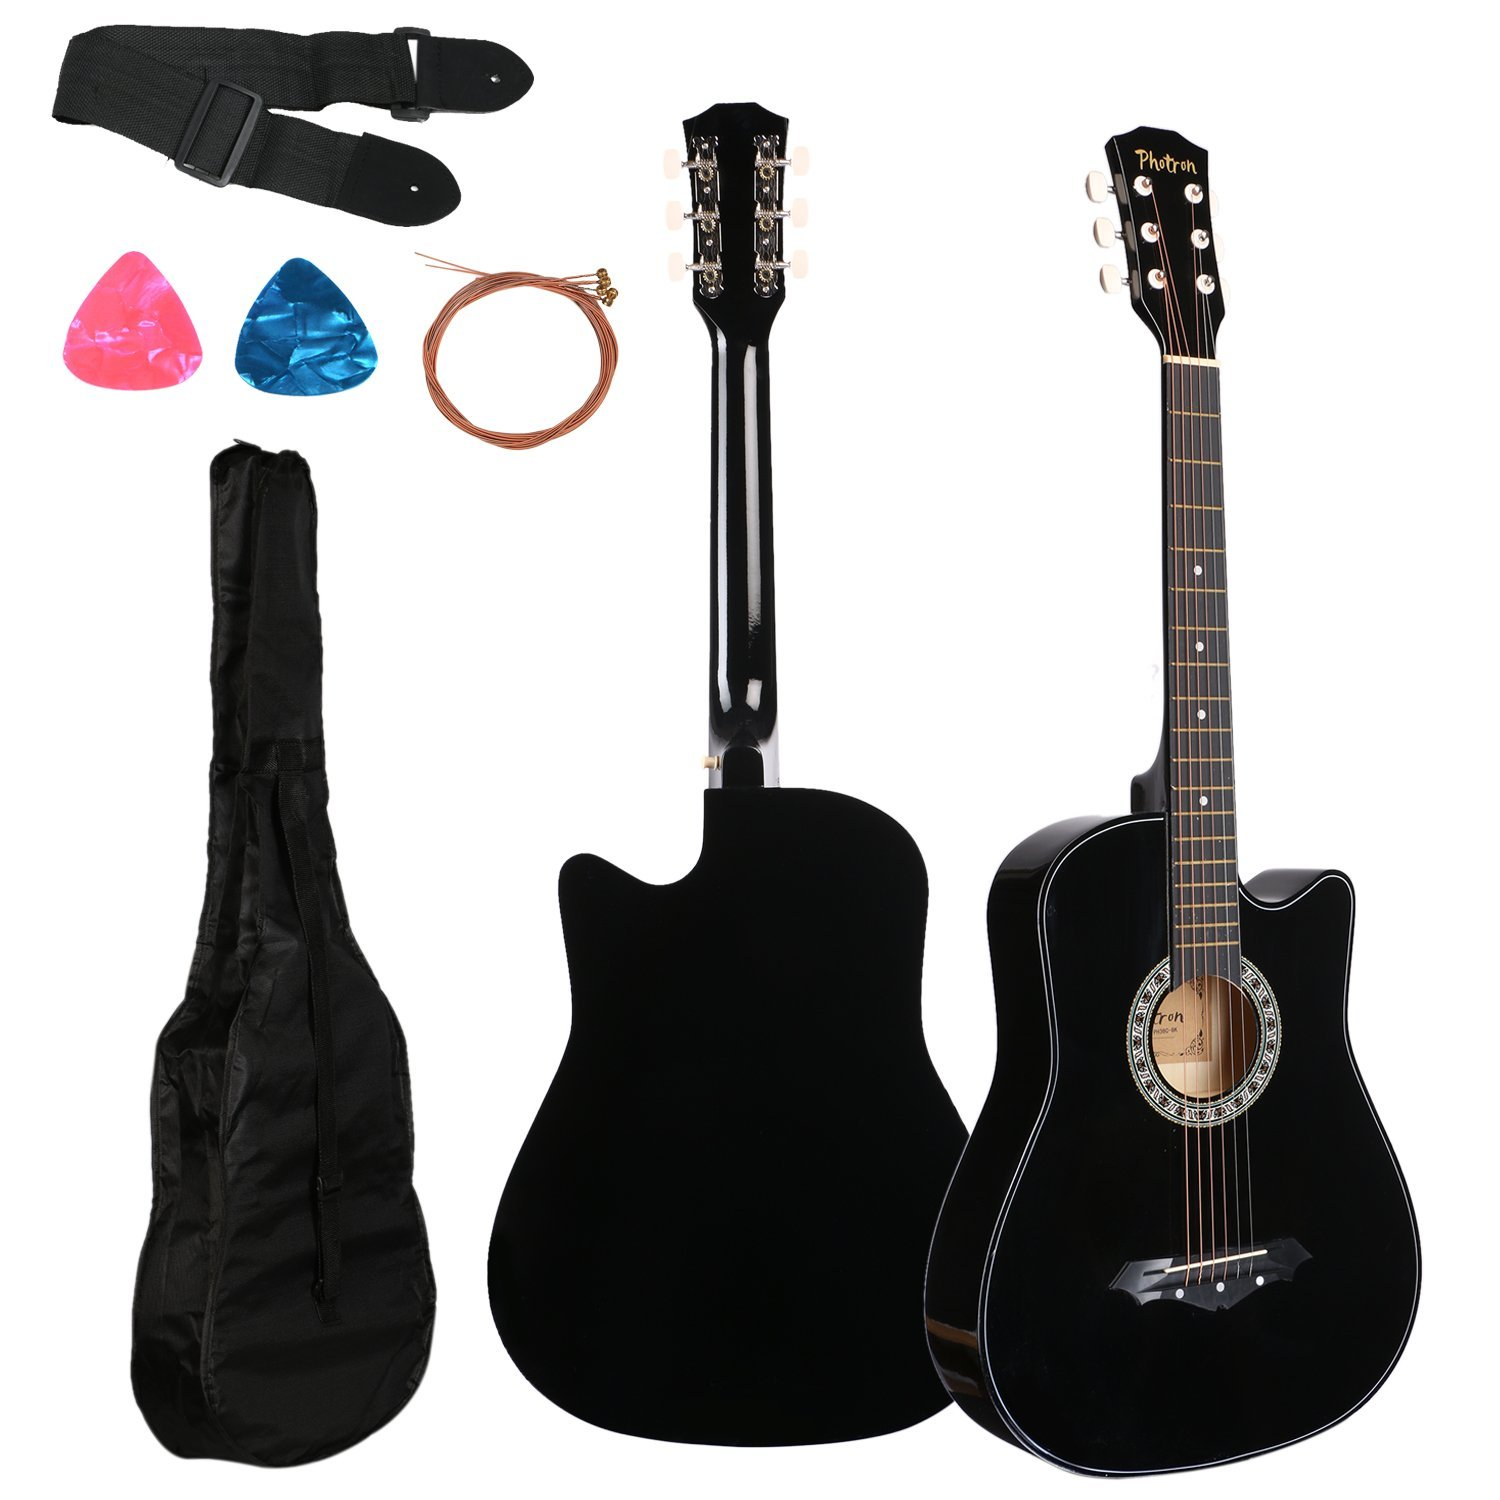 Top 5 Best Acoustic Guitar For Beginners Under 2000 Rs. - Learn Guitar Chords